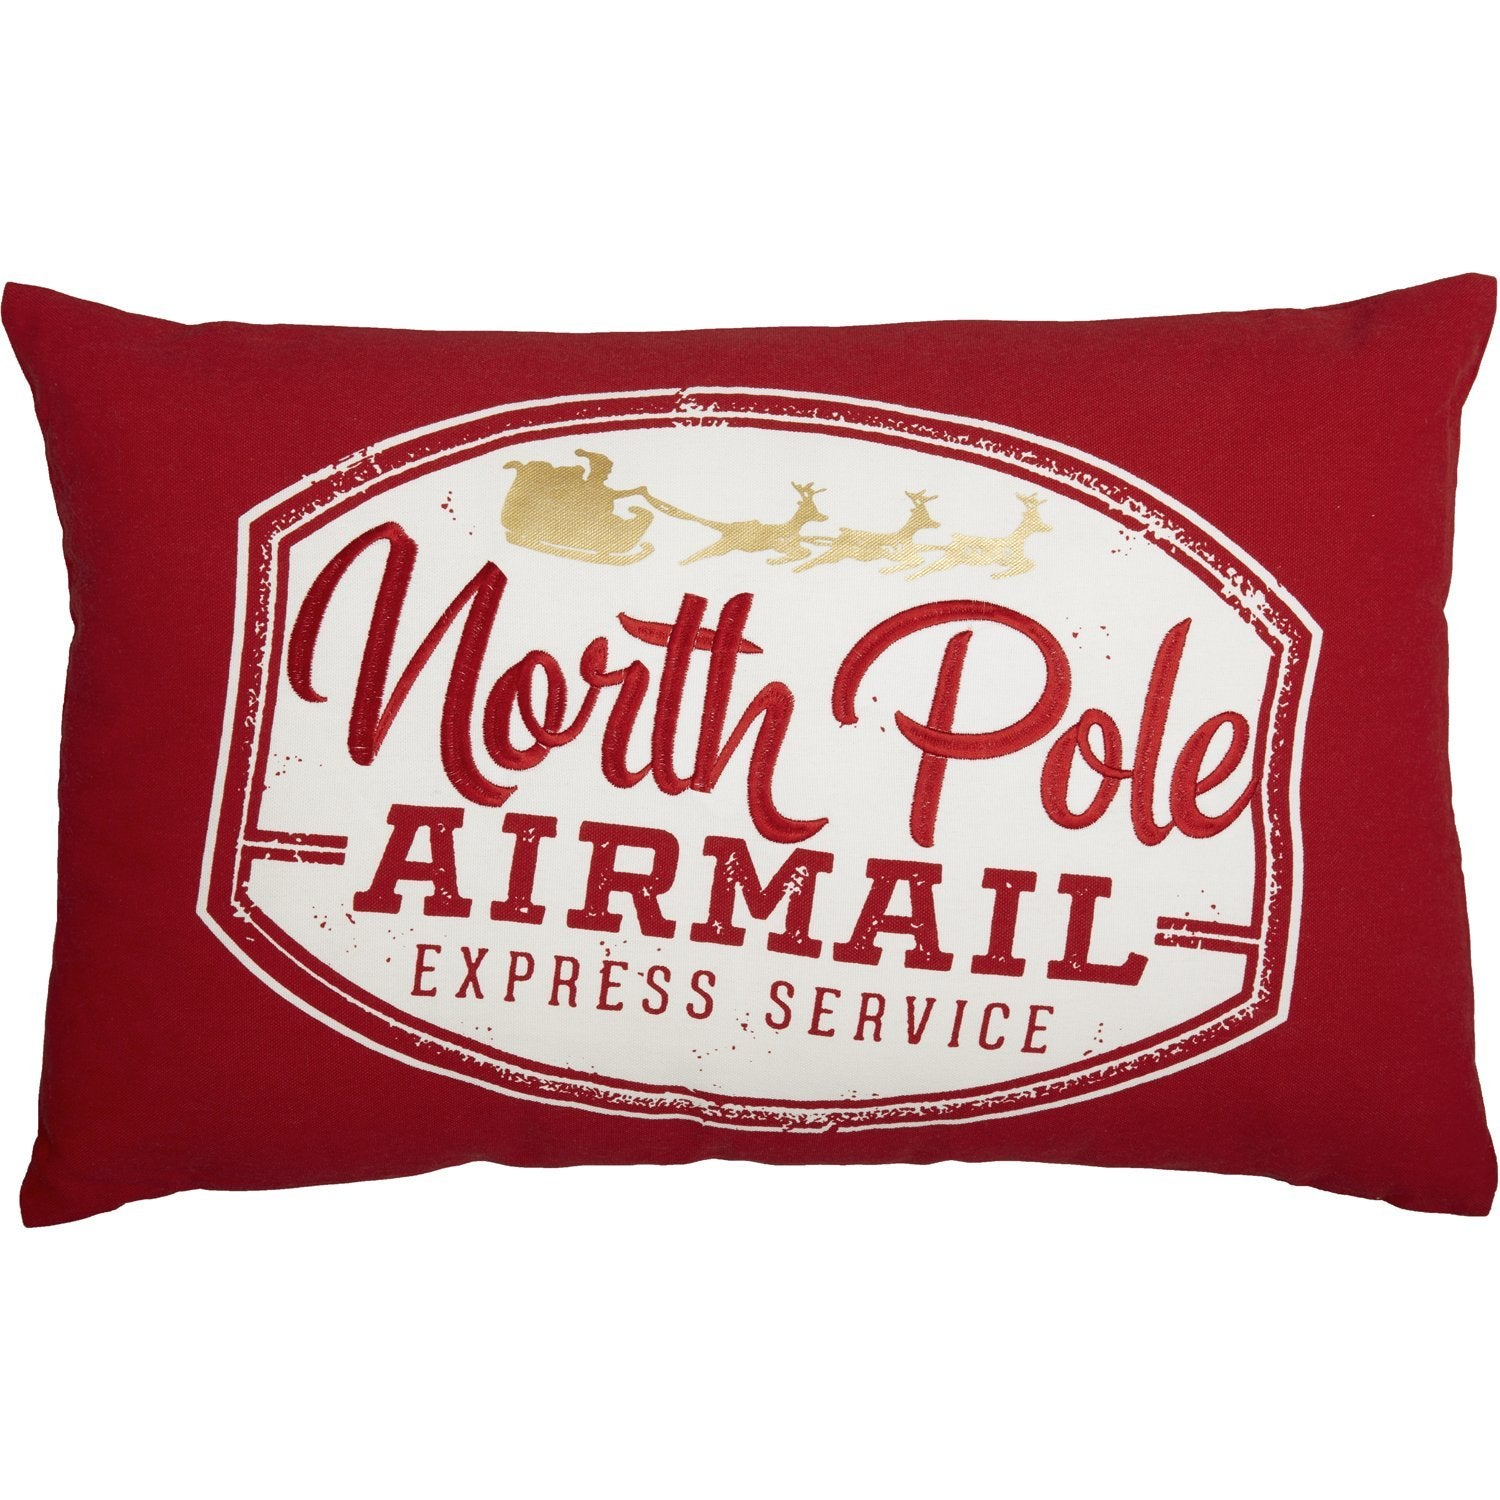 North Pole Airmail Pillow Cover.